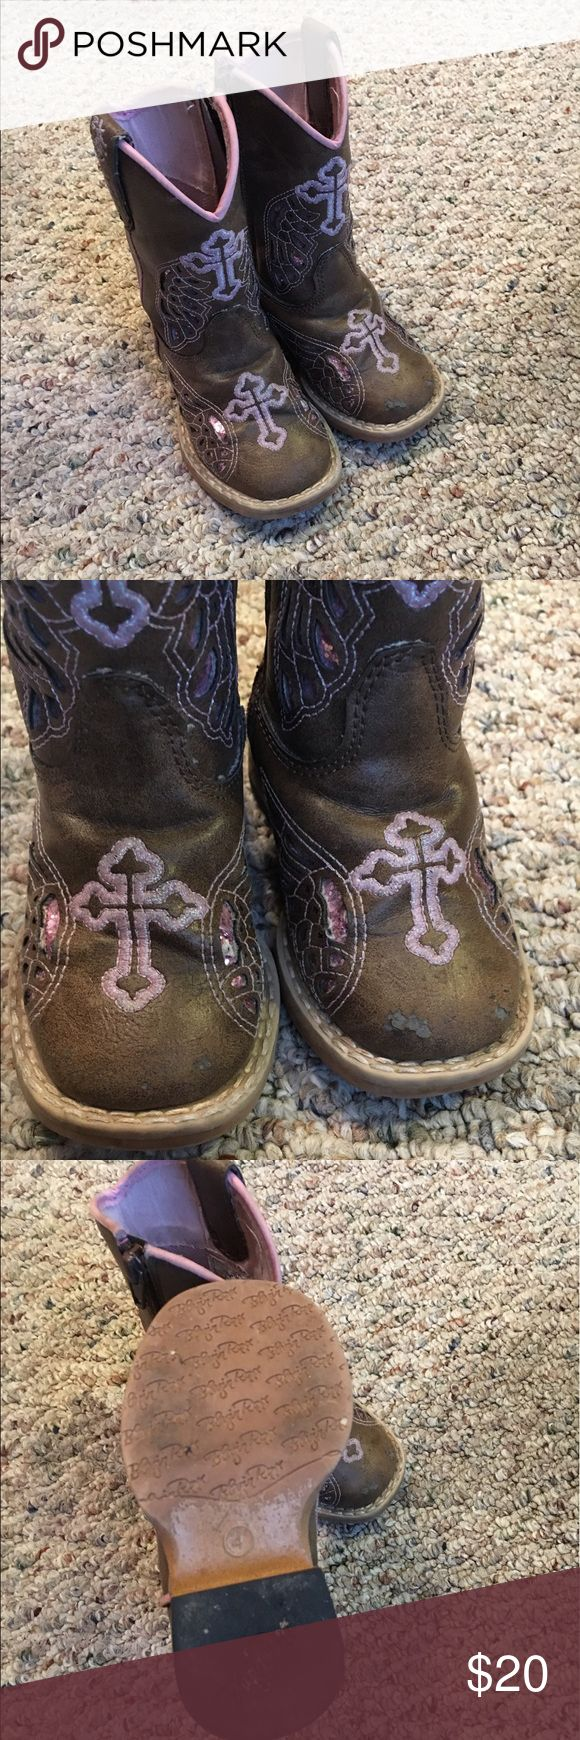 Toddler cowgirl boots size 4 Toddler cowgirl boots size 4 Shoes Winter & Rain Boots